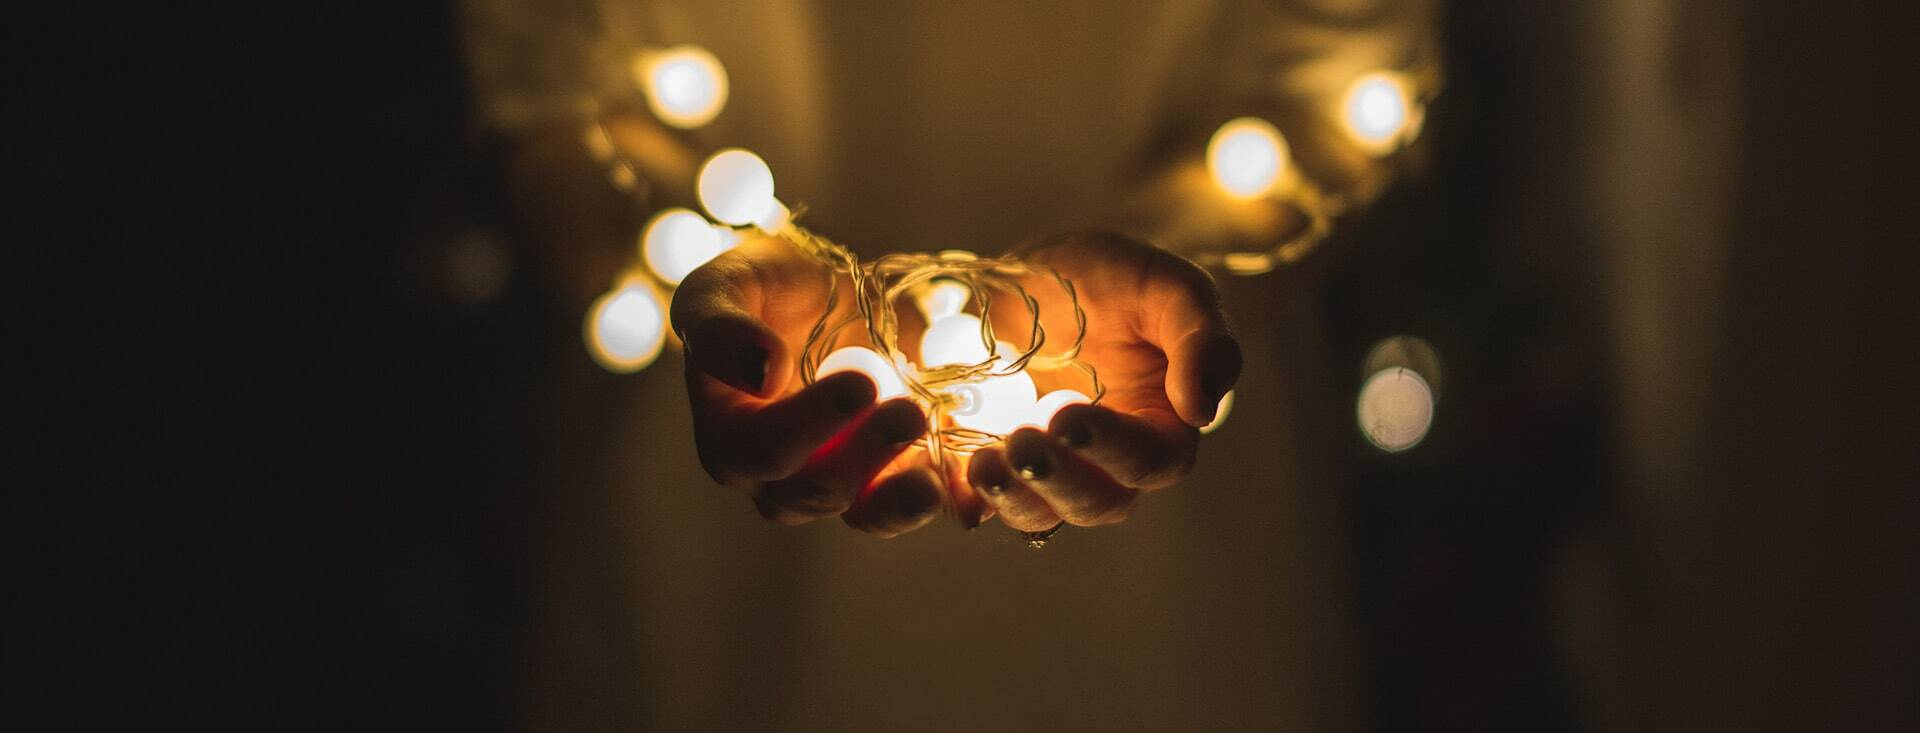 Two hands holding fairy lights